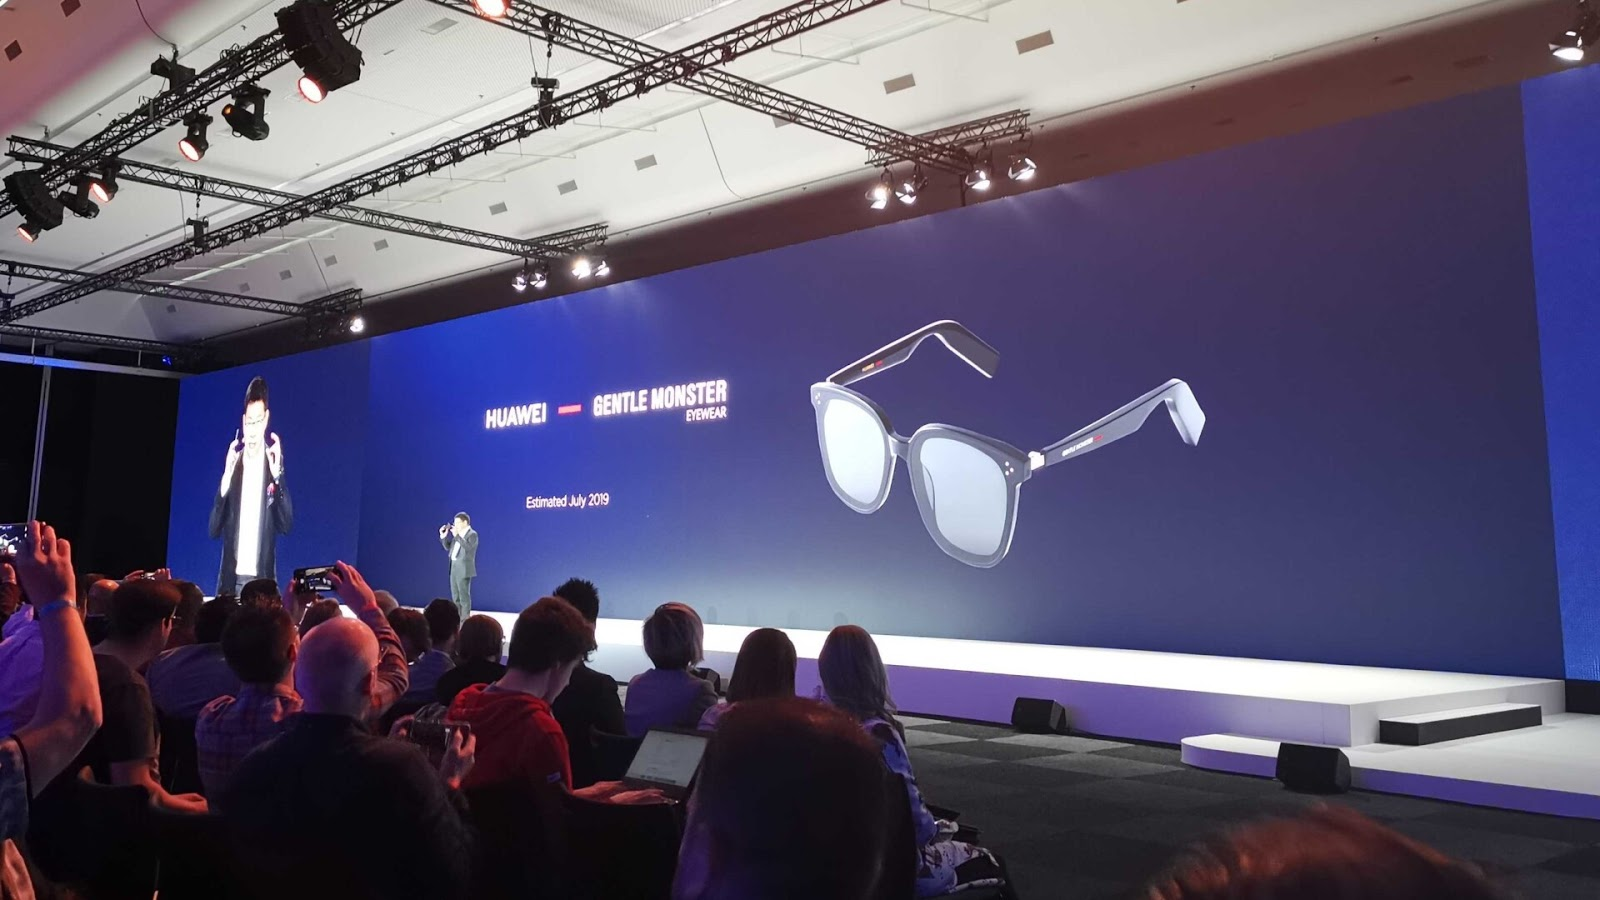 Huawei Unveils Smart Glasses In Partnership With Gentle Monster